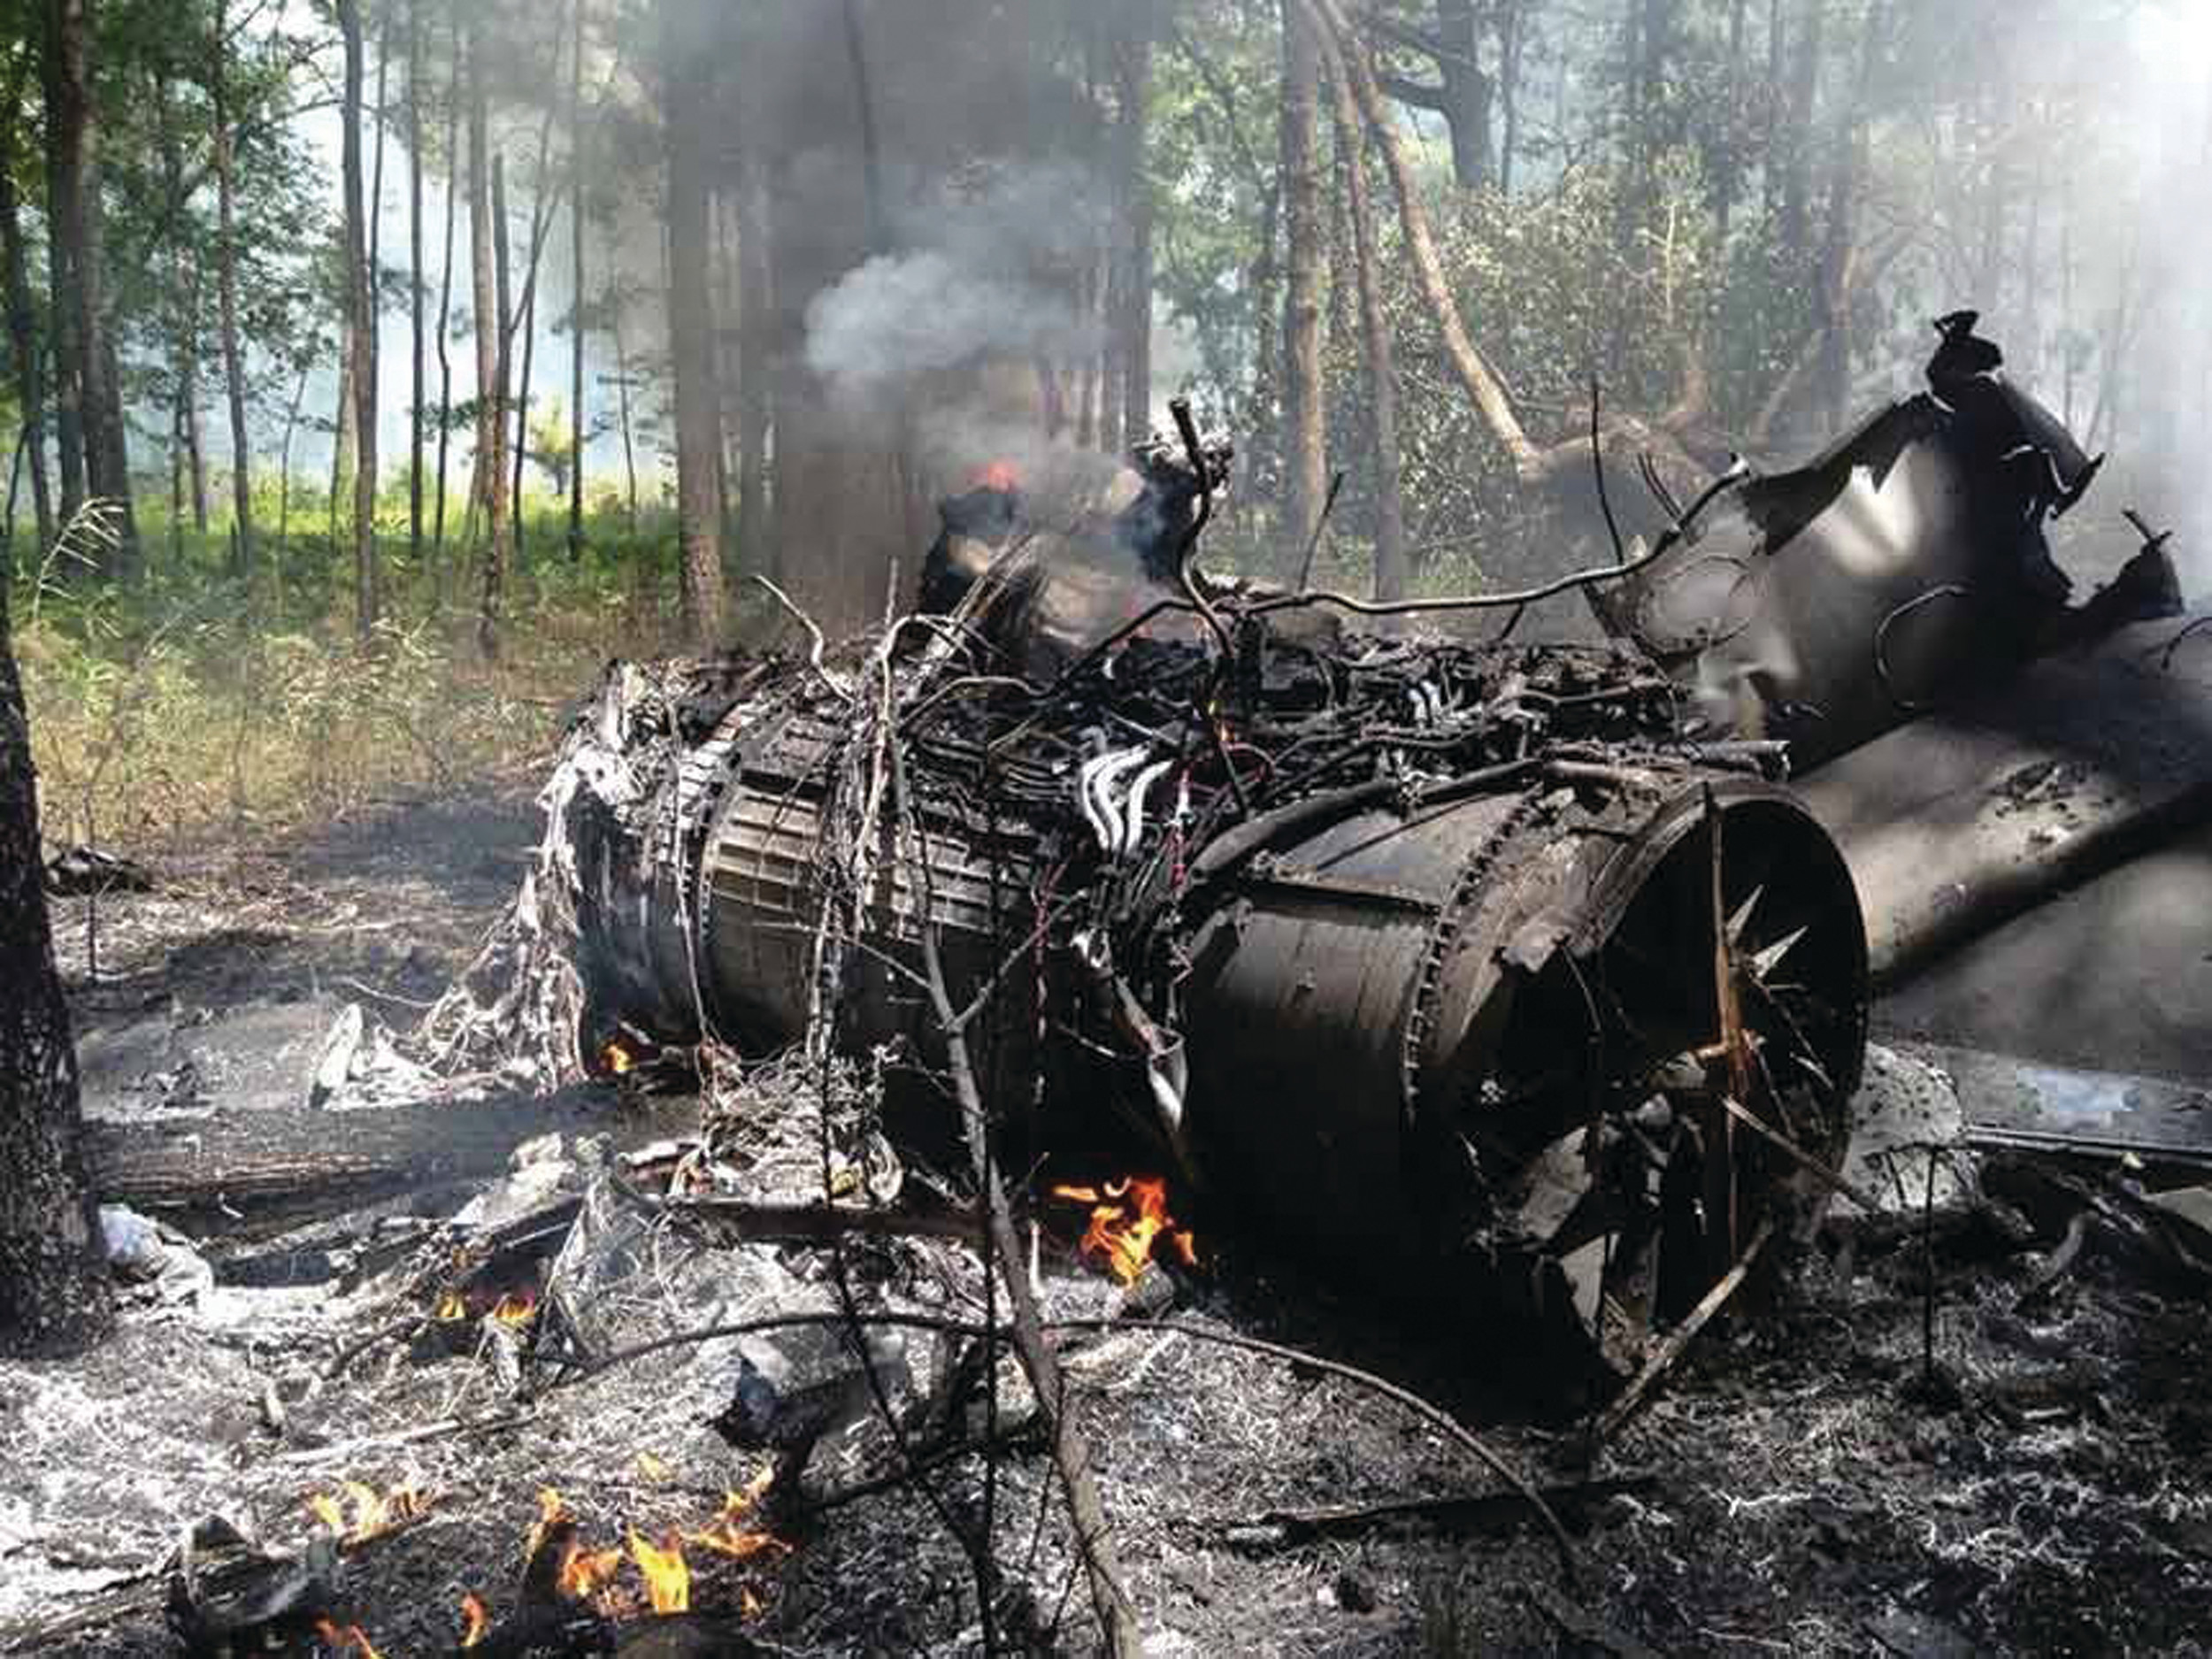 Wreckage is shown from the mid-air collision between a Shaw Air Force Base F-16 fighter jet and a private Cessna passenger plane over Berkeley County on July 7, 2015. The Cessna was completely destroyed in the crash, killing both people on board. The pilot of the F-16, Maj. Aaron Johnson of the 55th Fighter Squadron, ejected to safety.